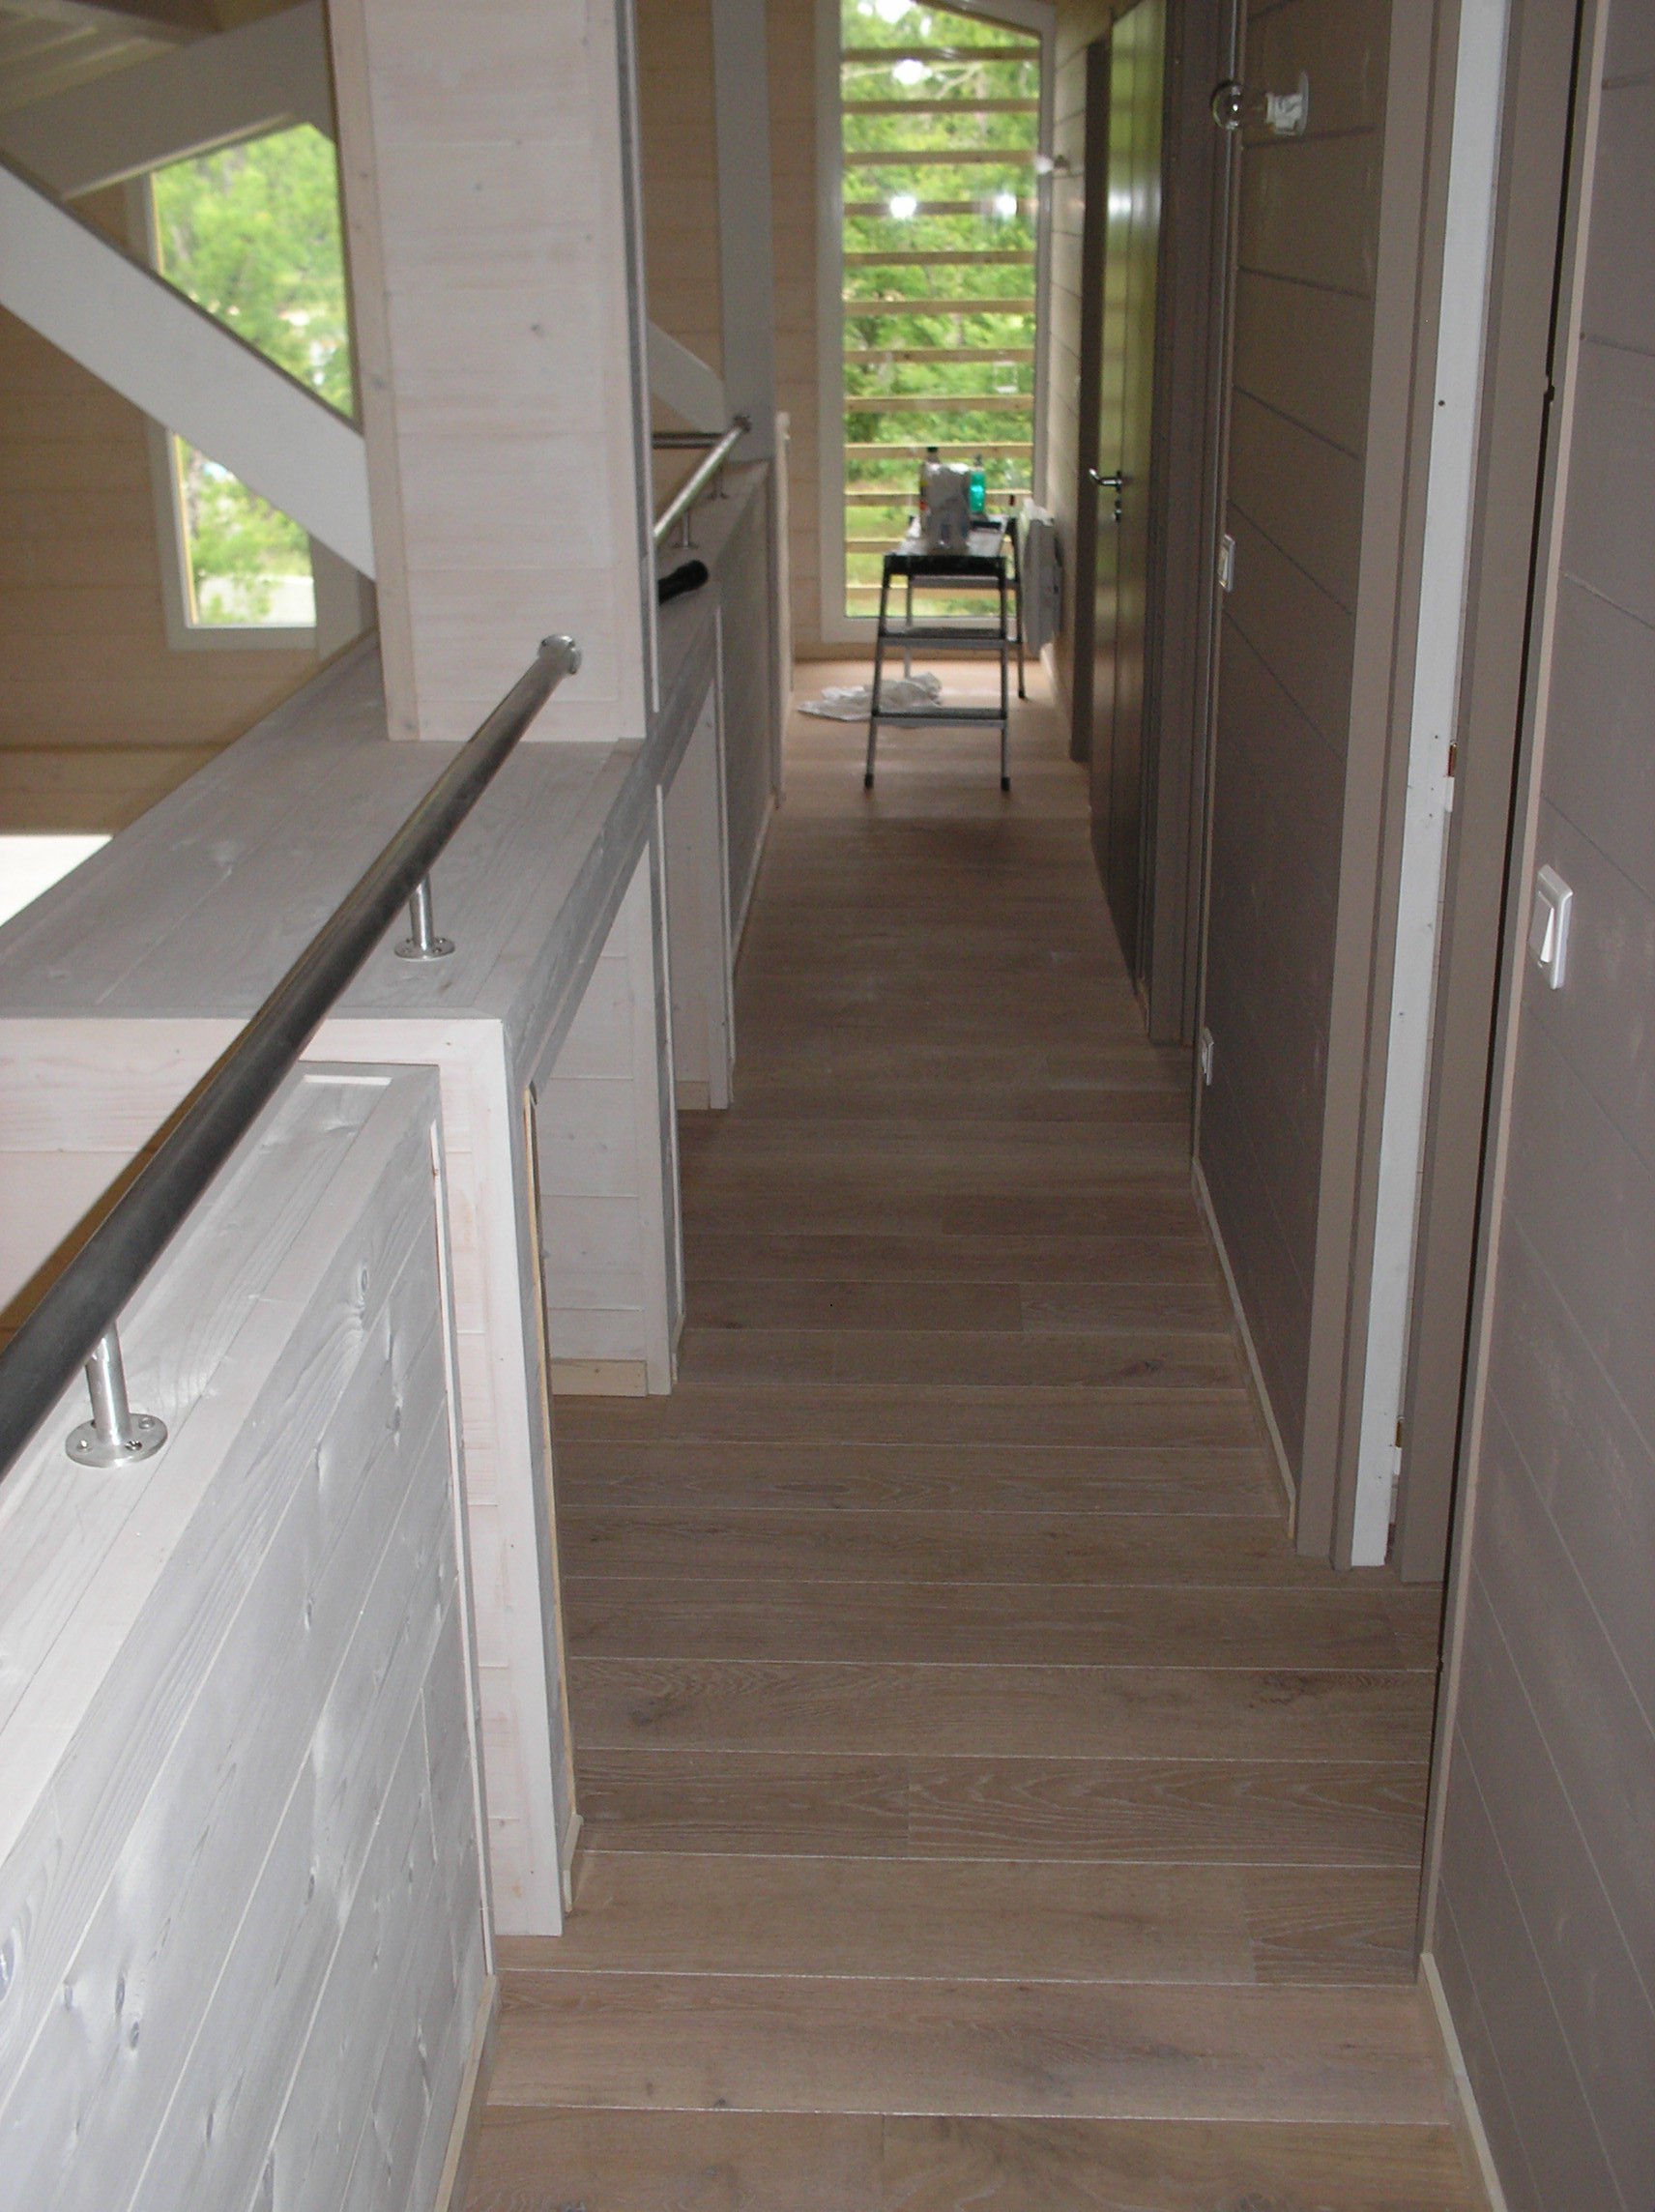 hardwood flooring contractors near me of duopark trendy collection throughout this feature makes it suitable for installation in a wider application range in the case od duopark 20 mm the particularly thick top